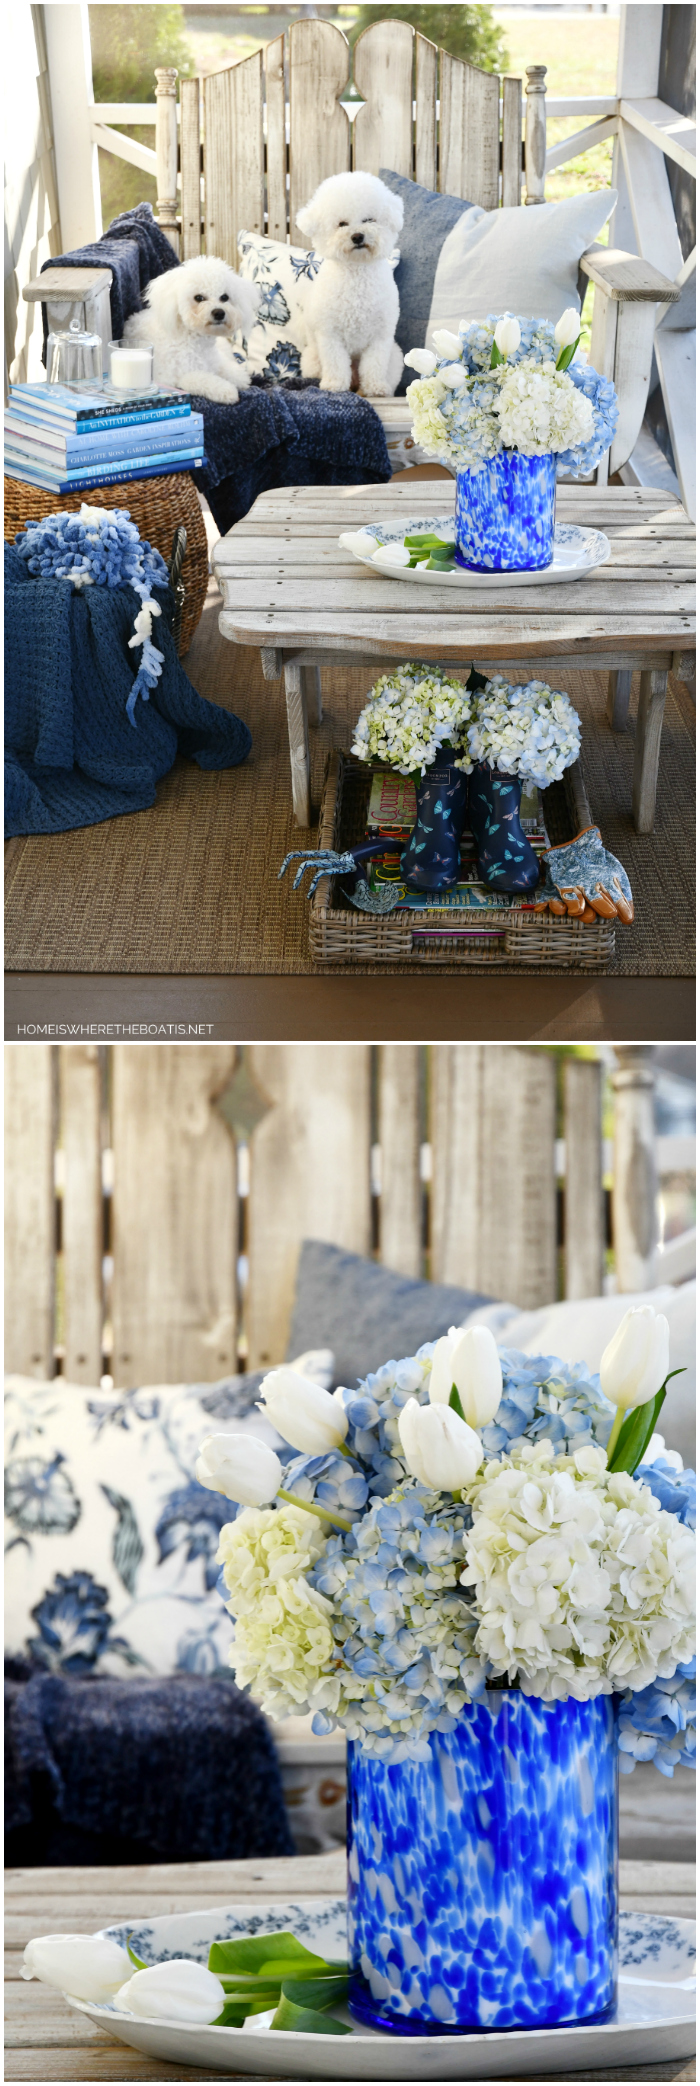 January Blues and Blooms on the Porch | ©homeiswheretheboatis.net